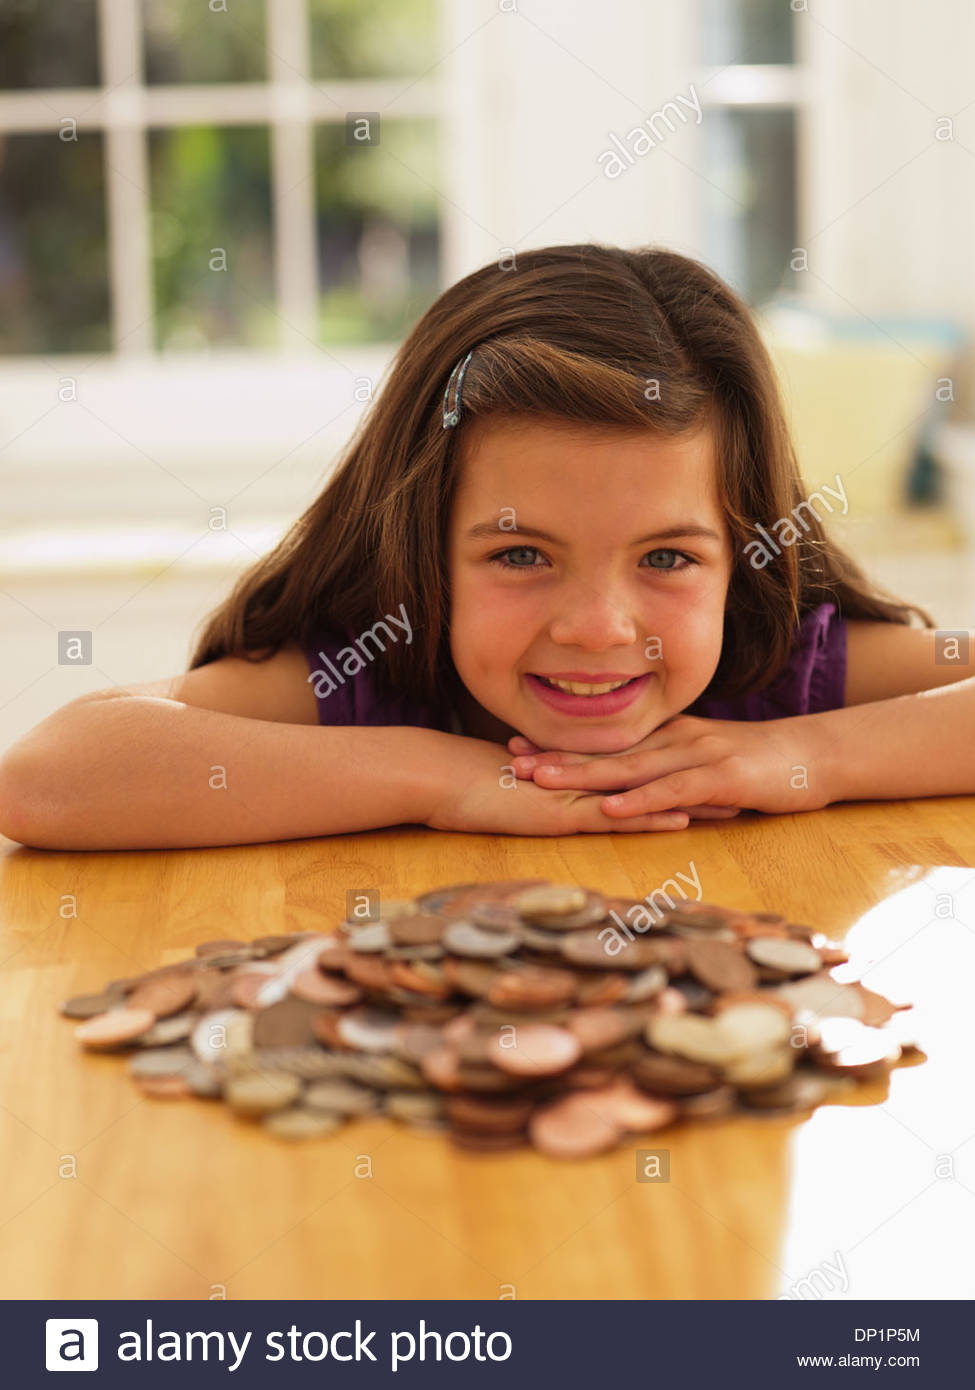 Smiling girl looking at pile of coins - Stock Image